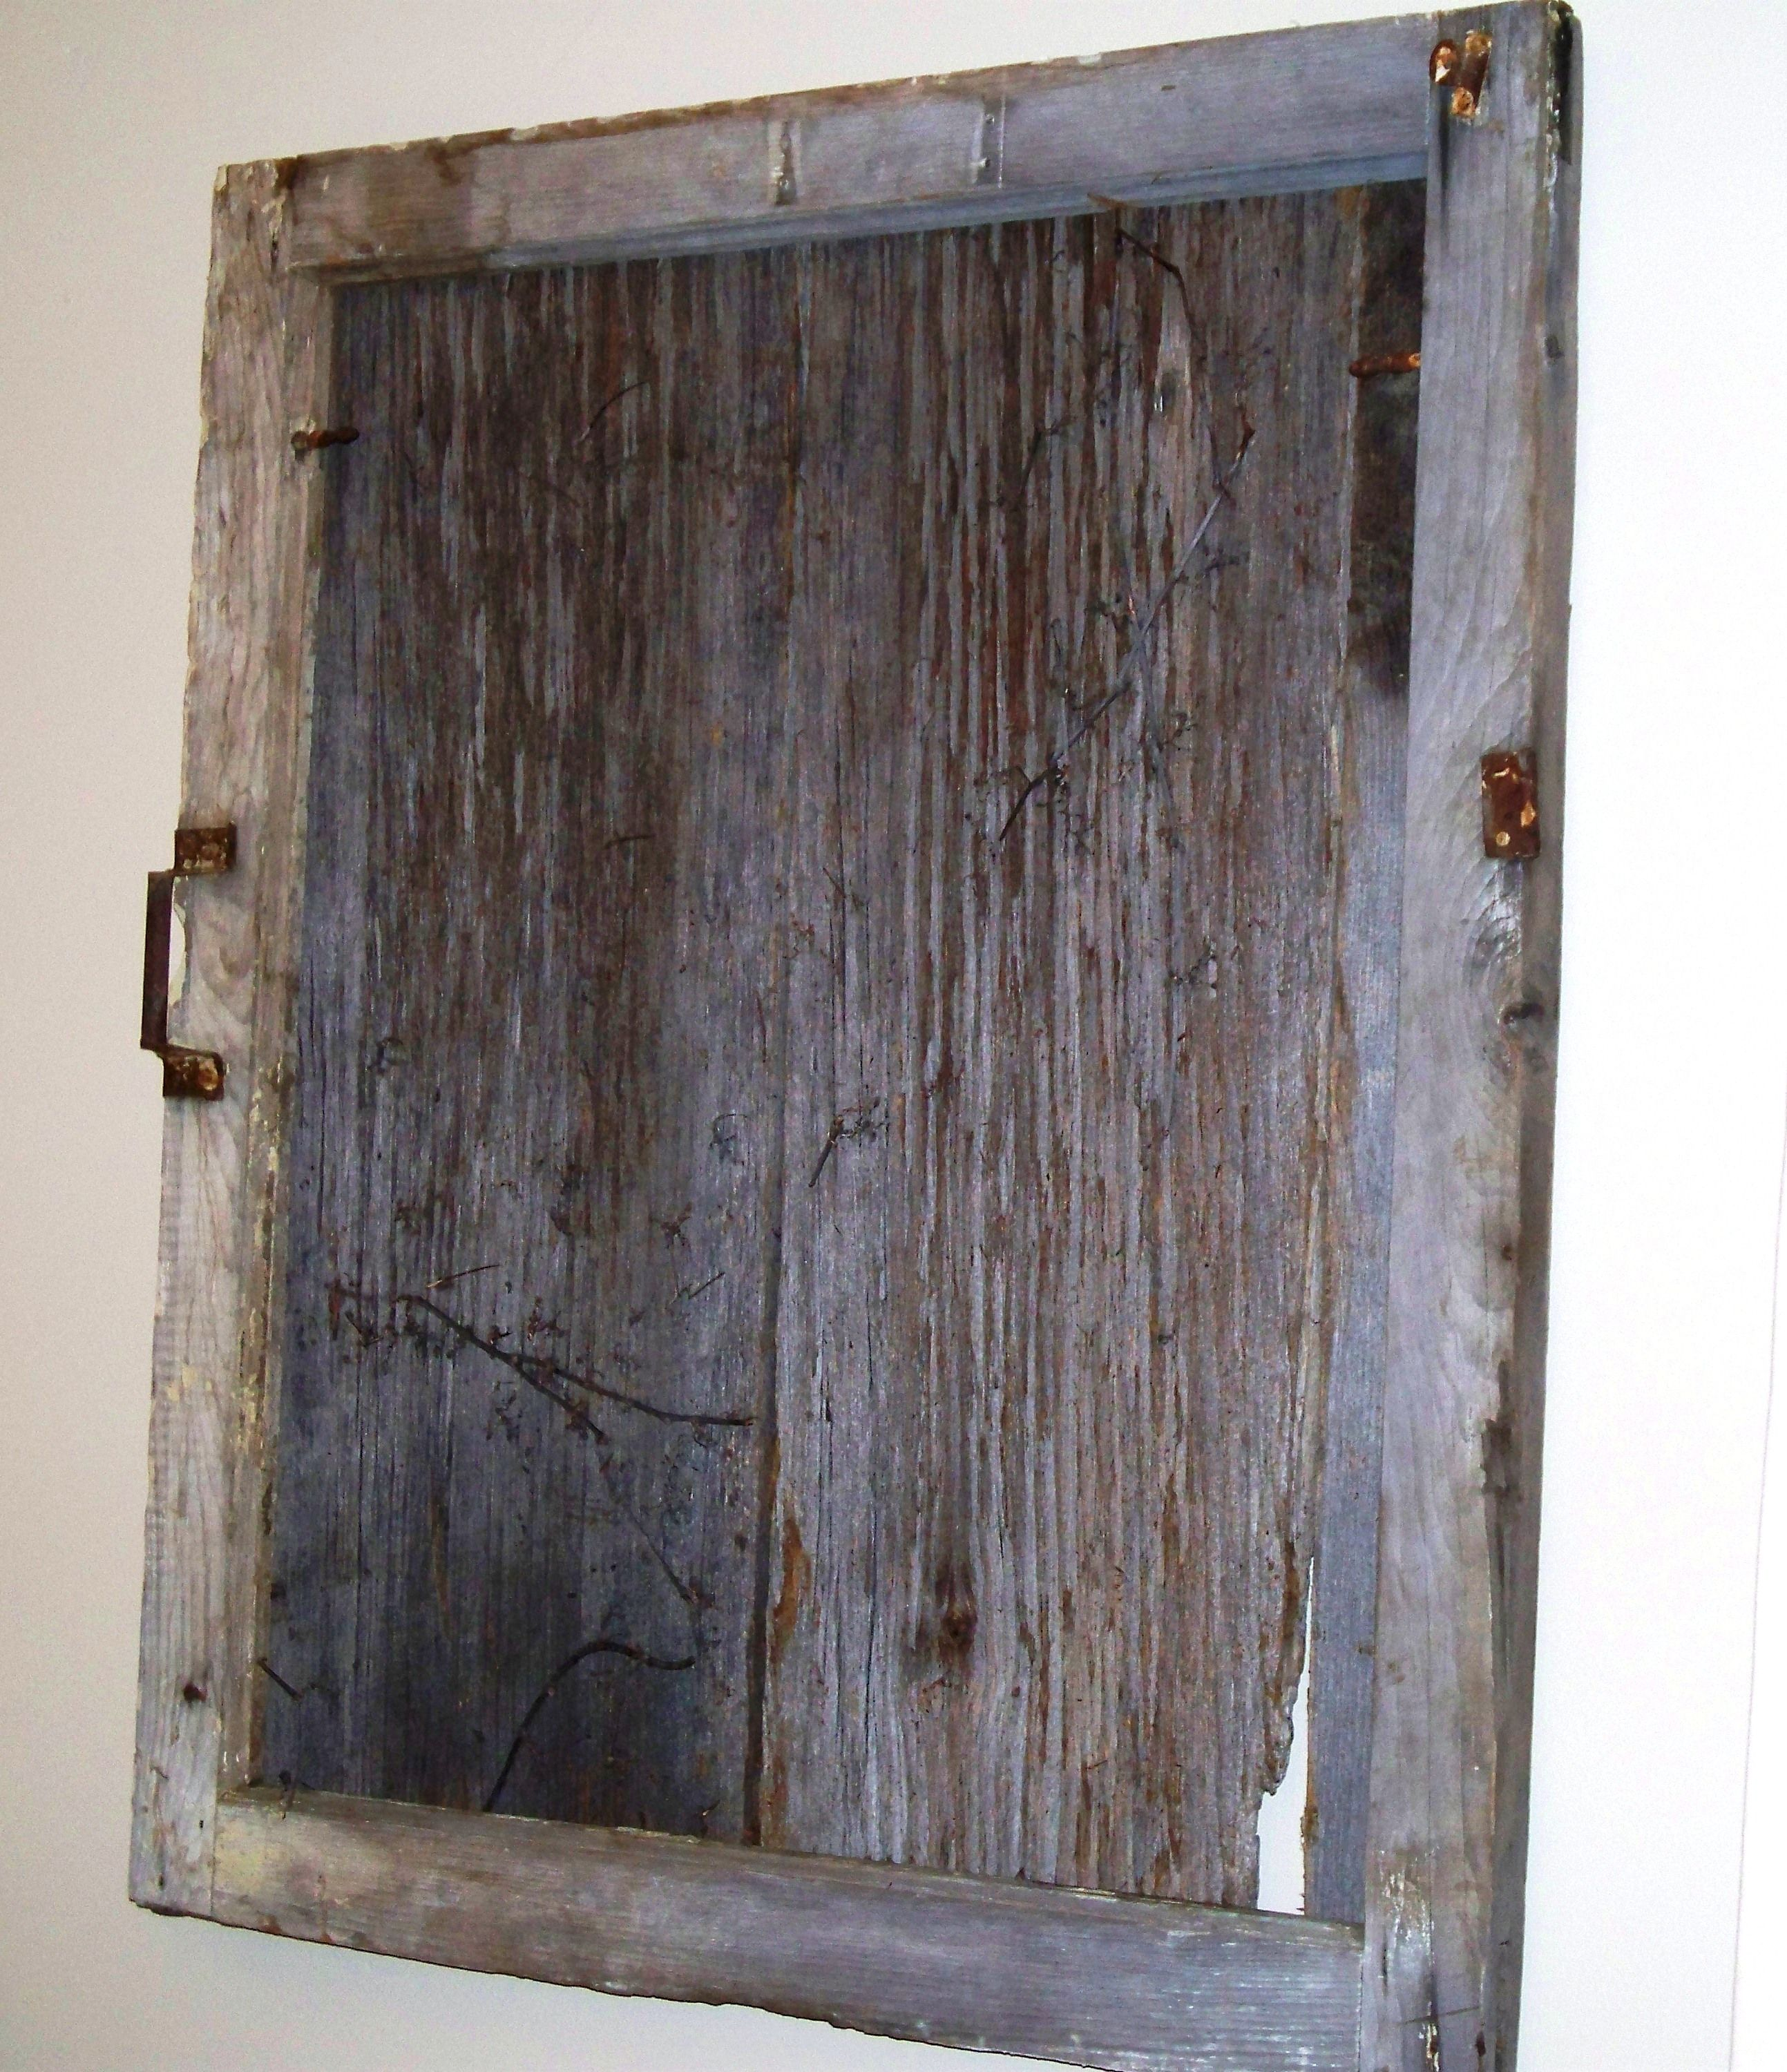 This reclaimed barn window frame makes a wonderful wall decoration. The frame has been filled with siding from the same barn. The siding has vines that have grown into the wood grain over time. To get yours today contact us: kzkustoms@gmail.com